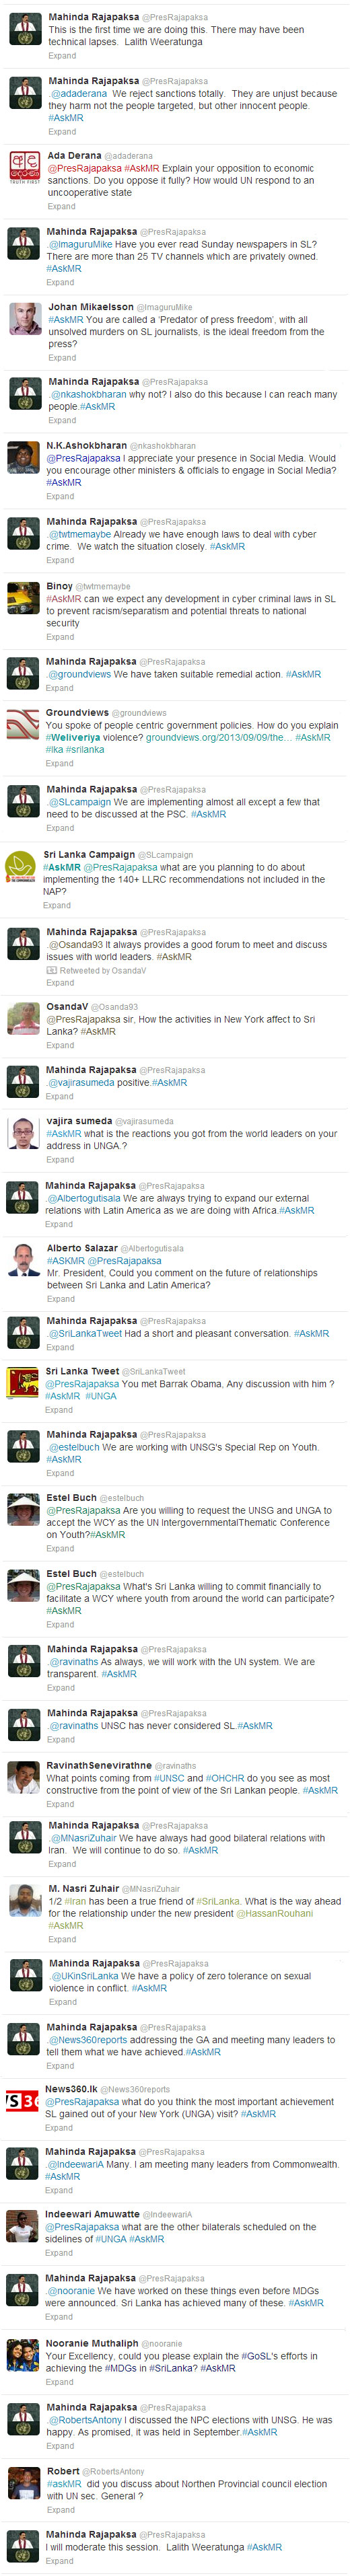 #AskMR Twitter Q&A with President Rajapaksa